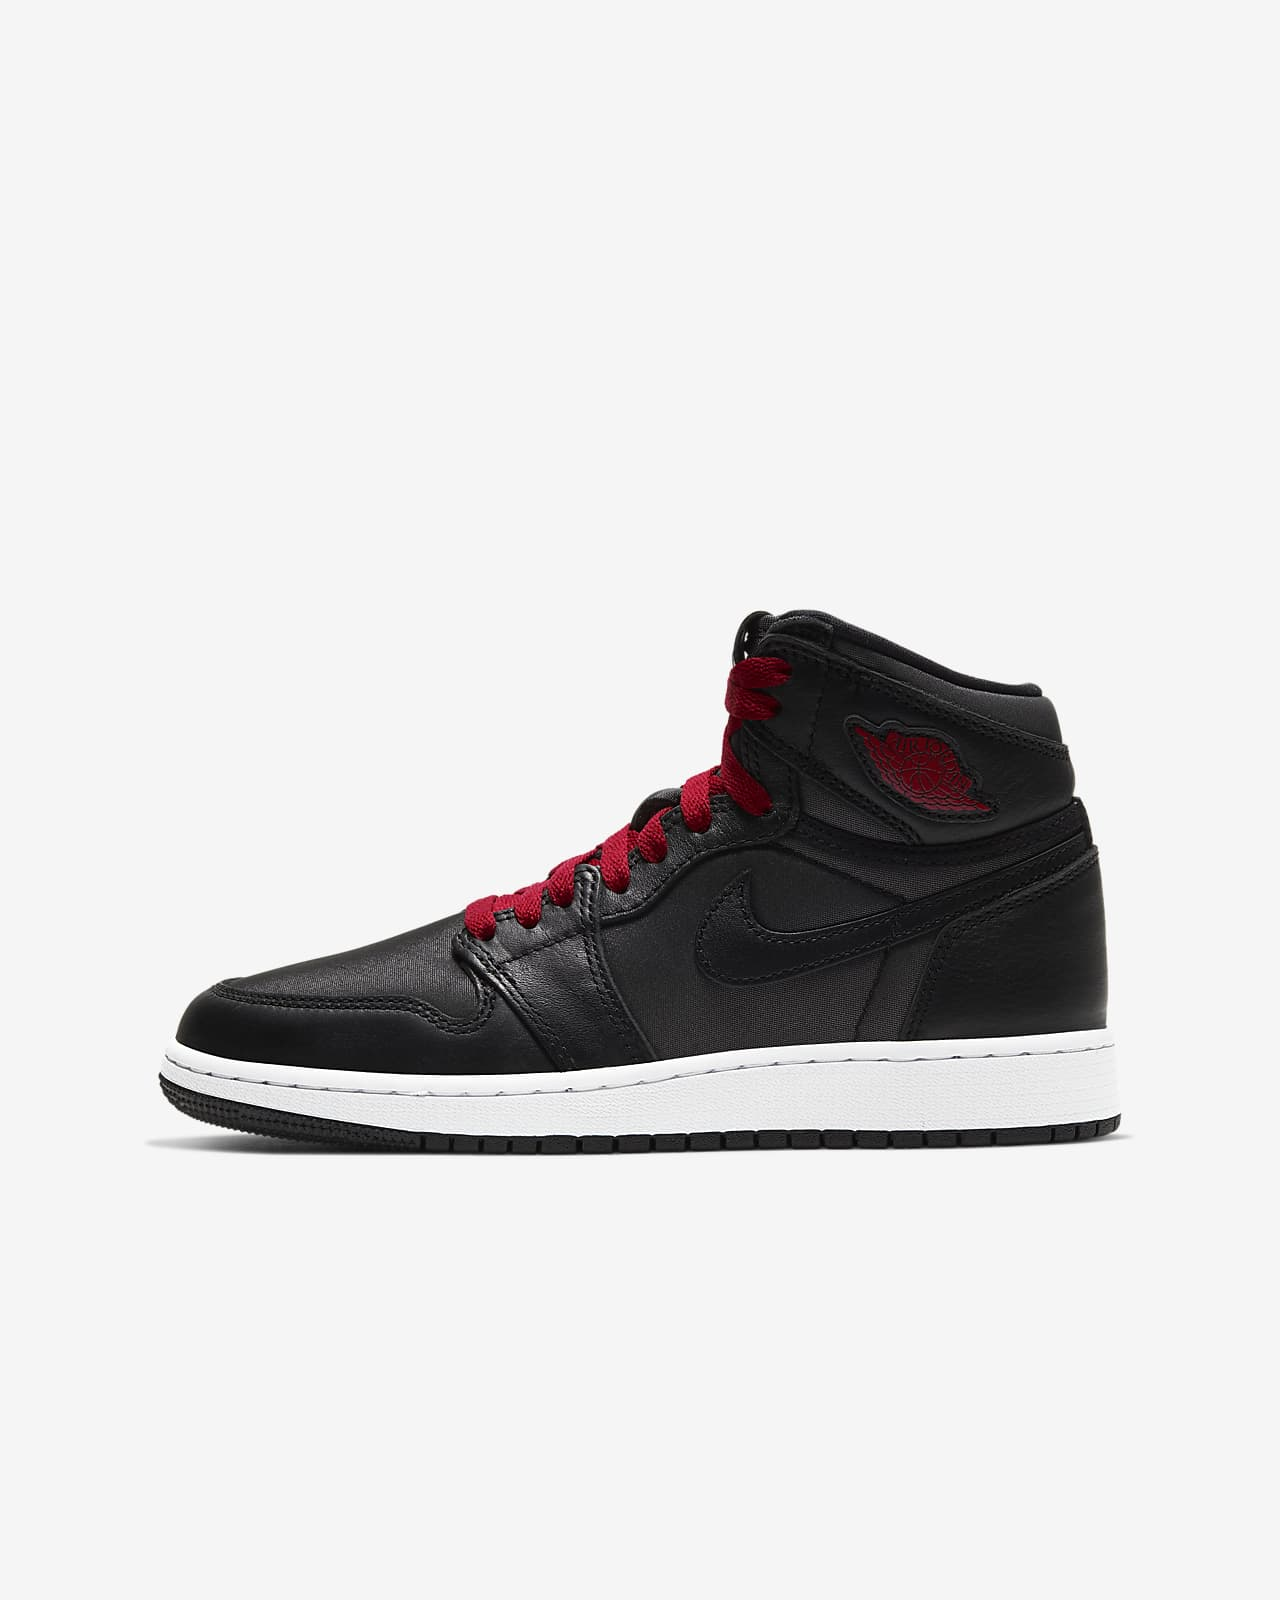 Air Jordan 1 Retro High OG Boys' Shoe